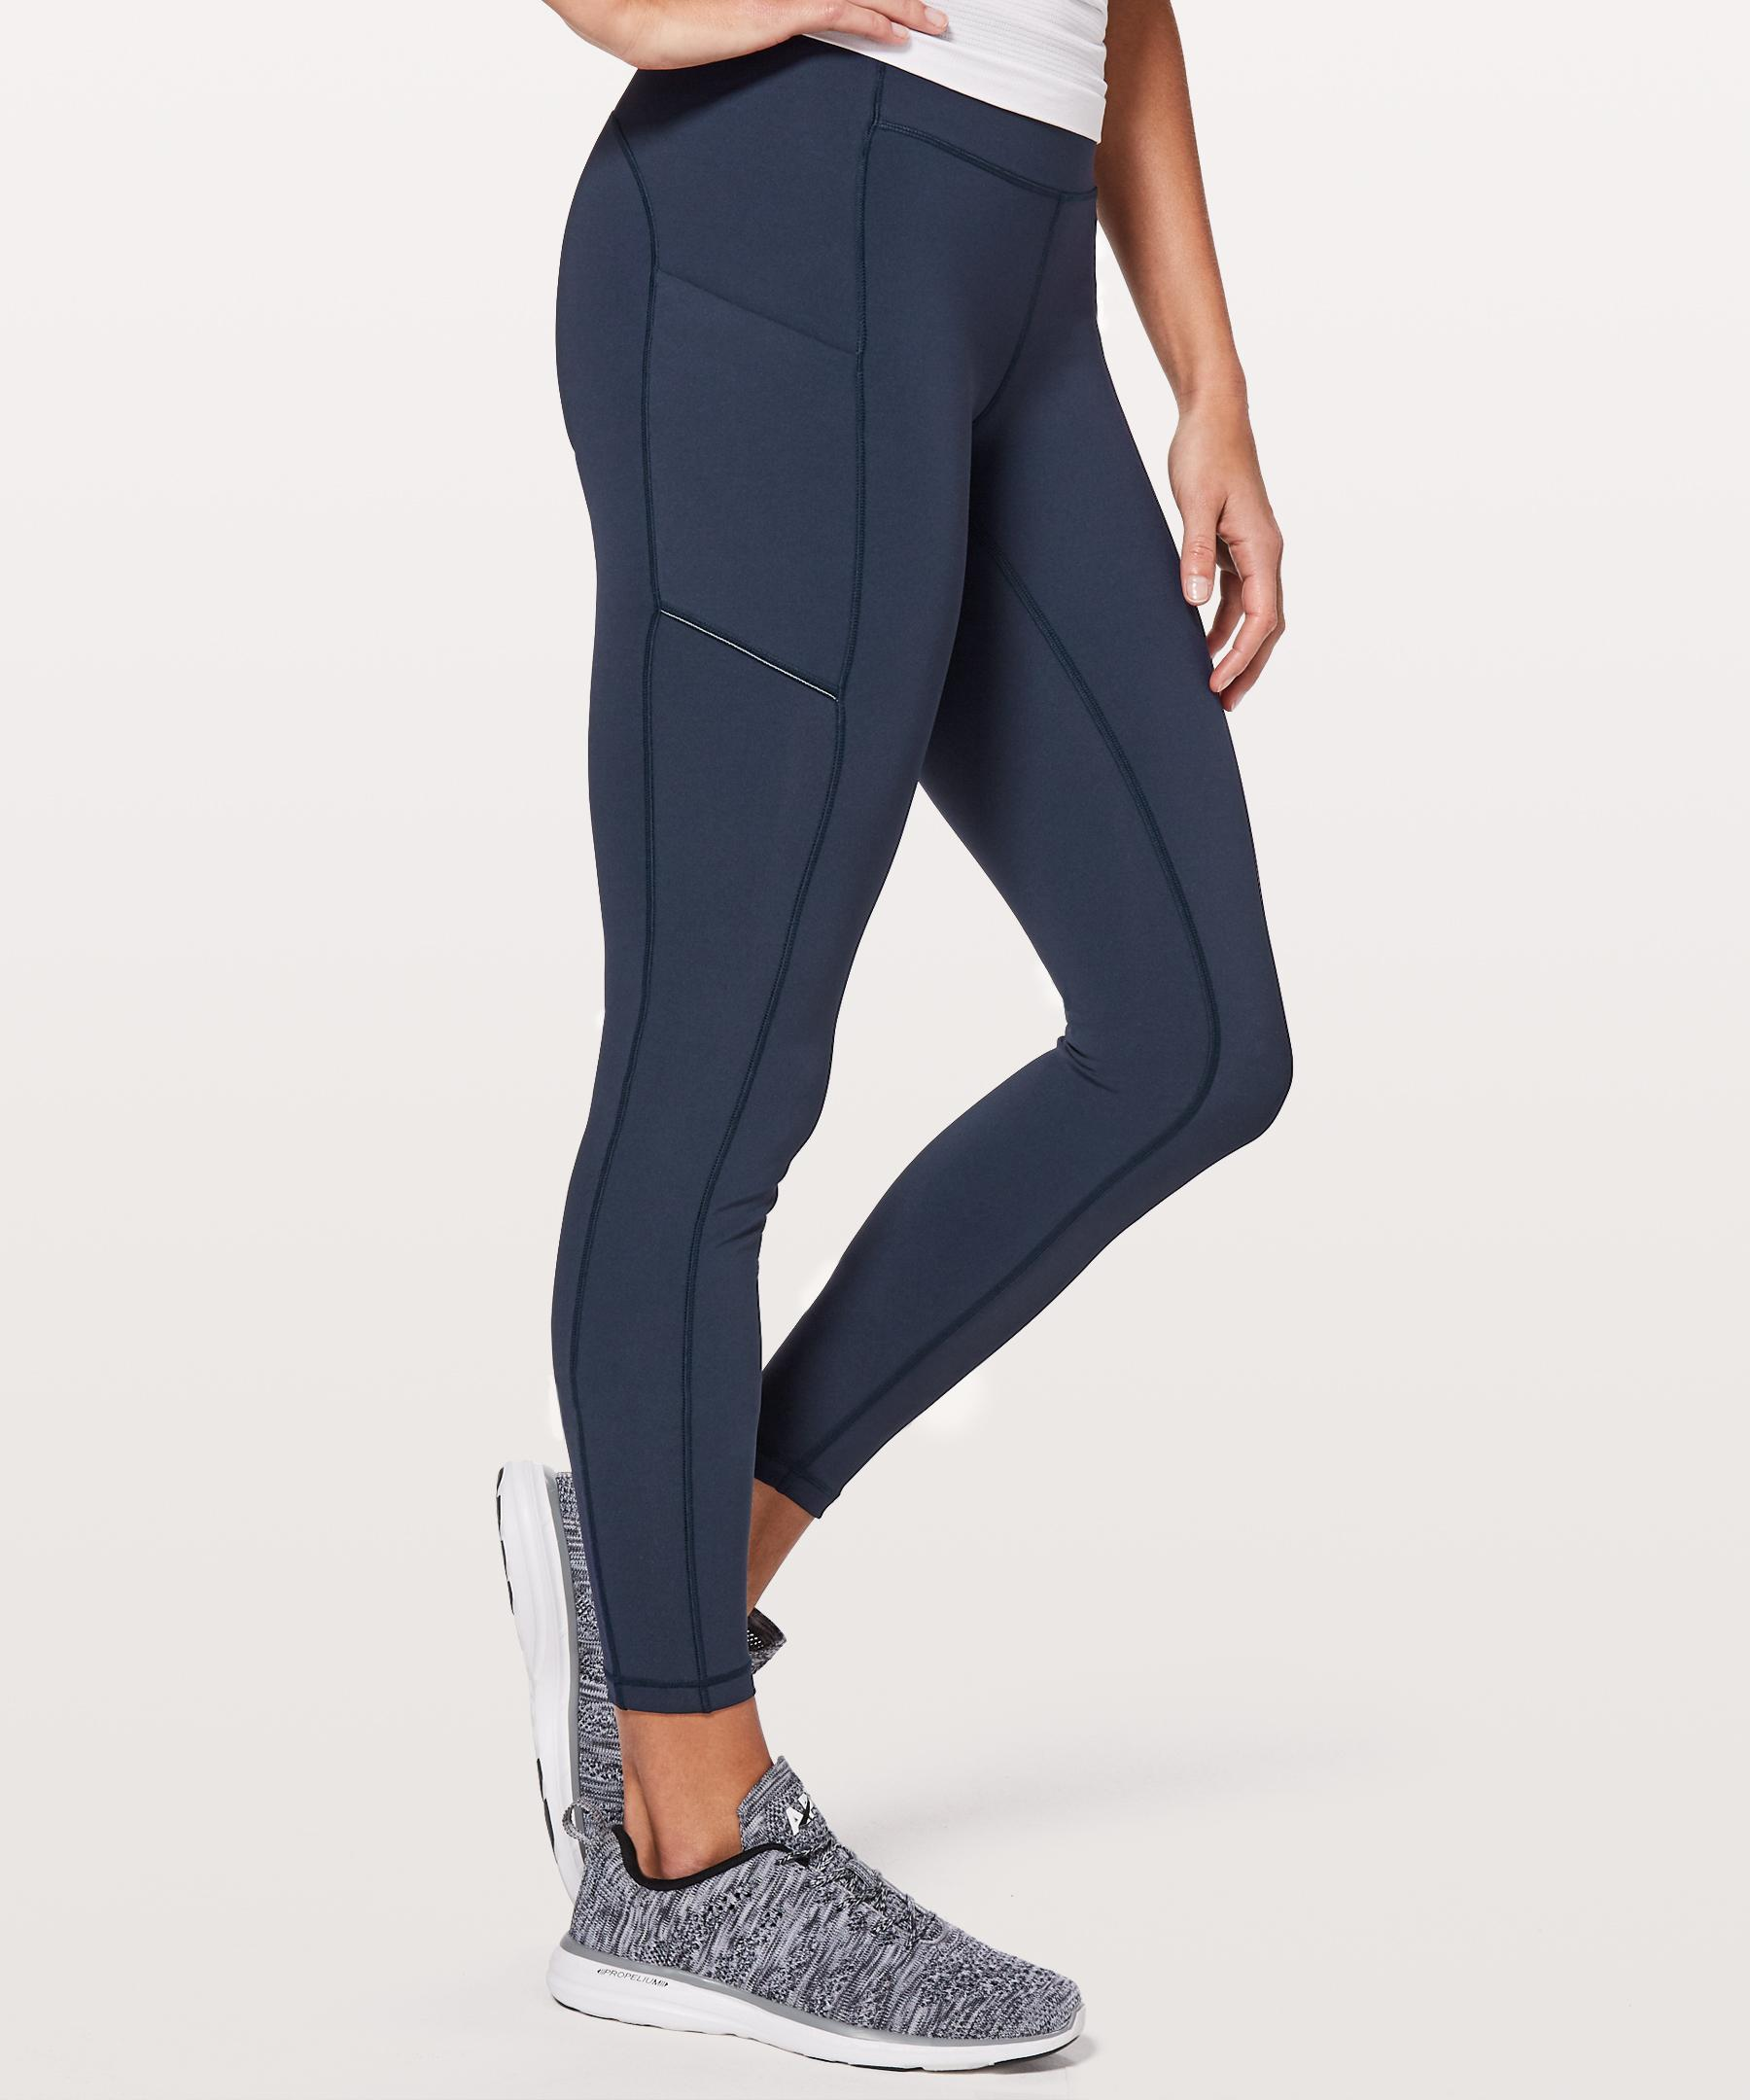 9cb978b946 lululemon athletica Speed Up Tight in Blue - Lyst